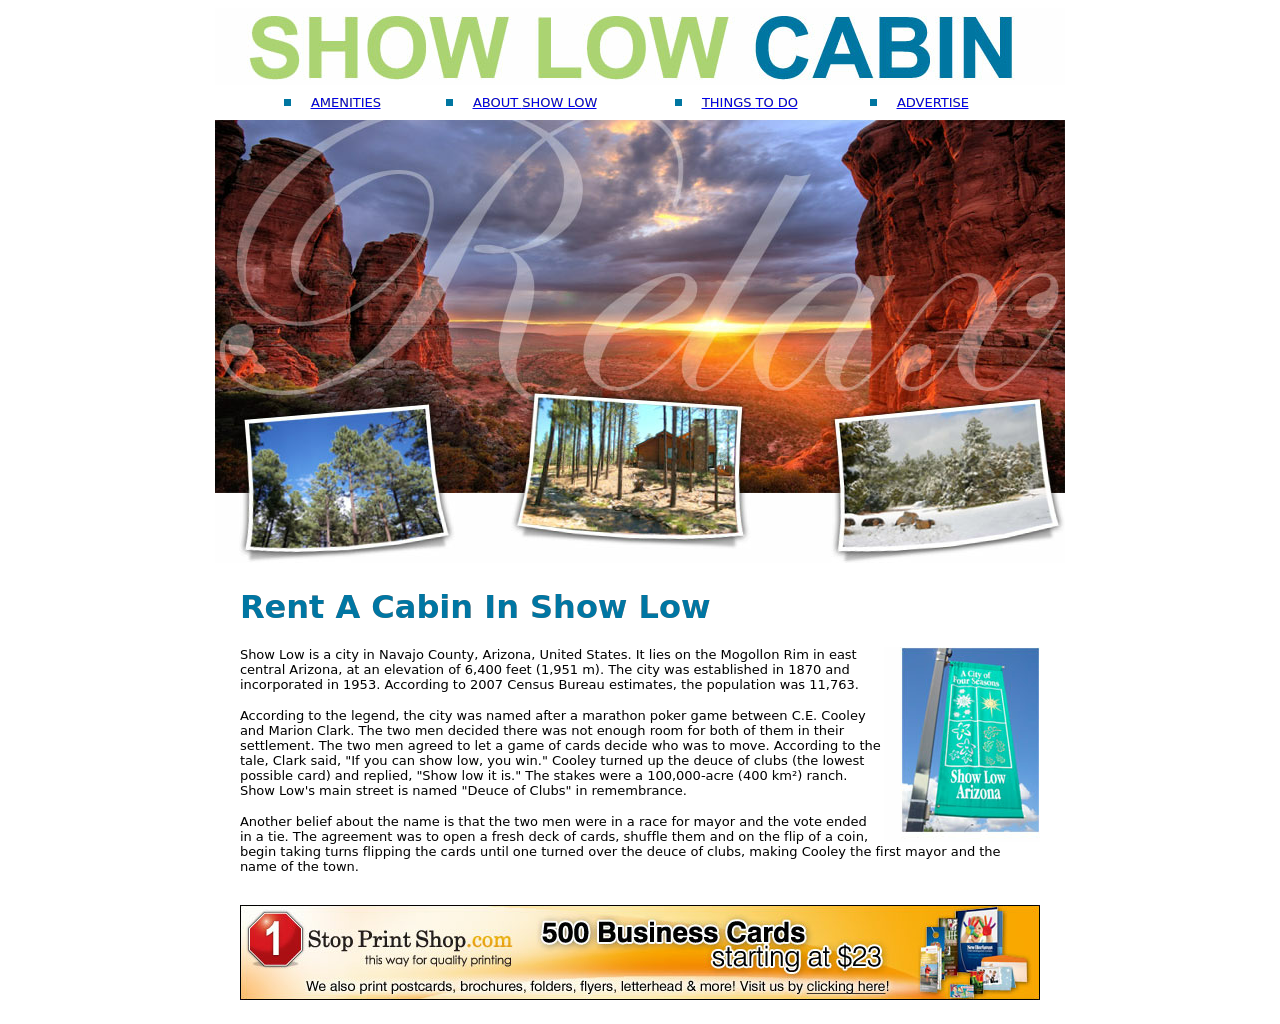 Show-Low-Cabin-Advertising-Reviews-Pricing